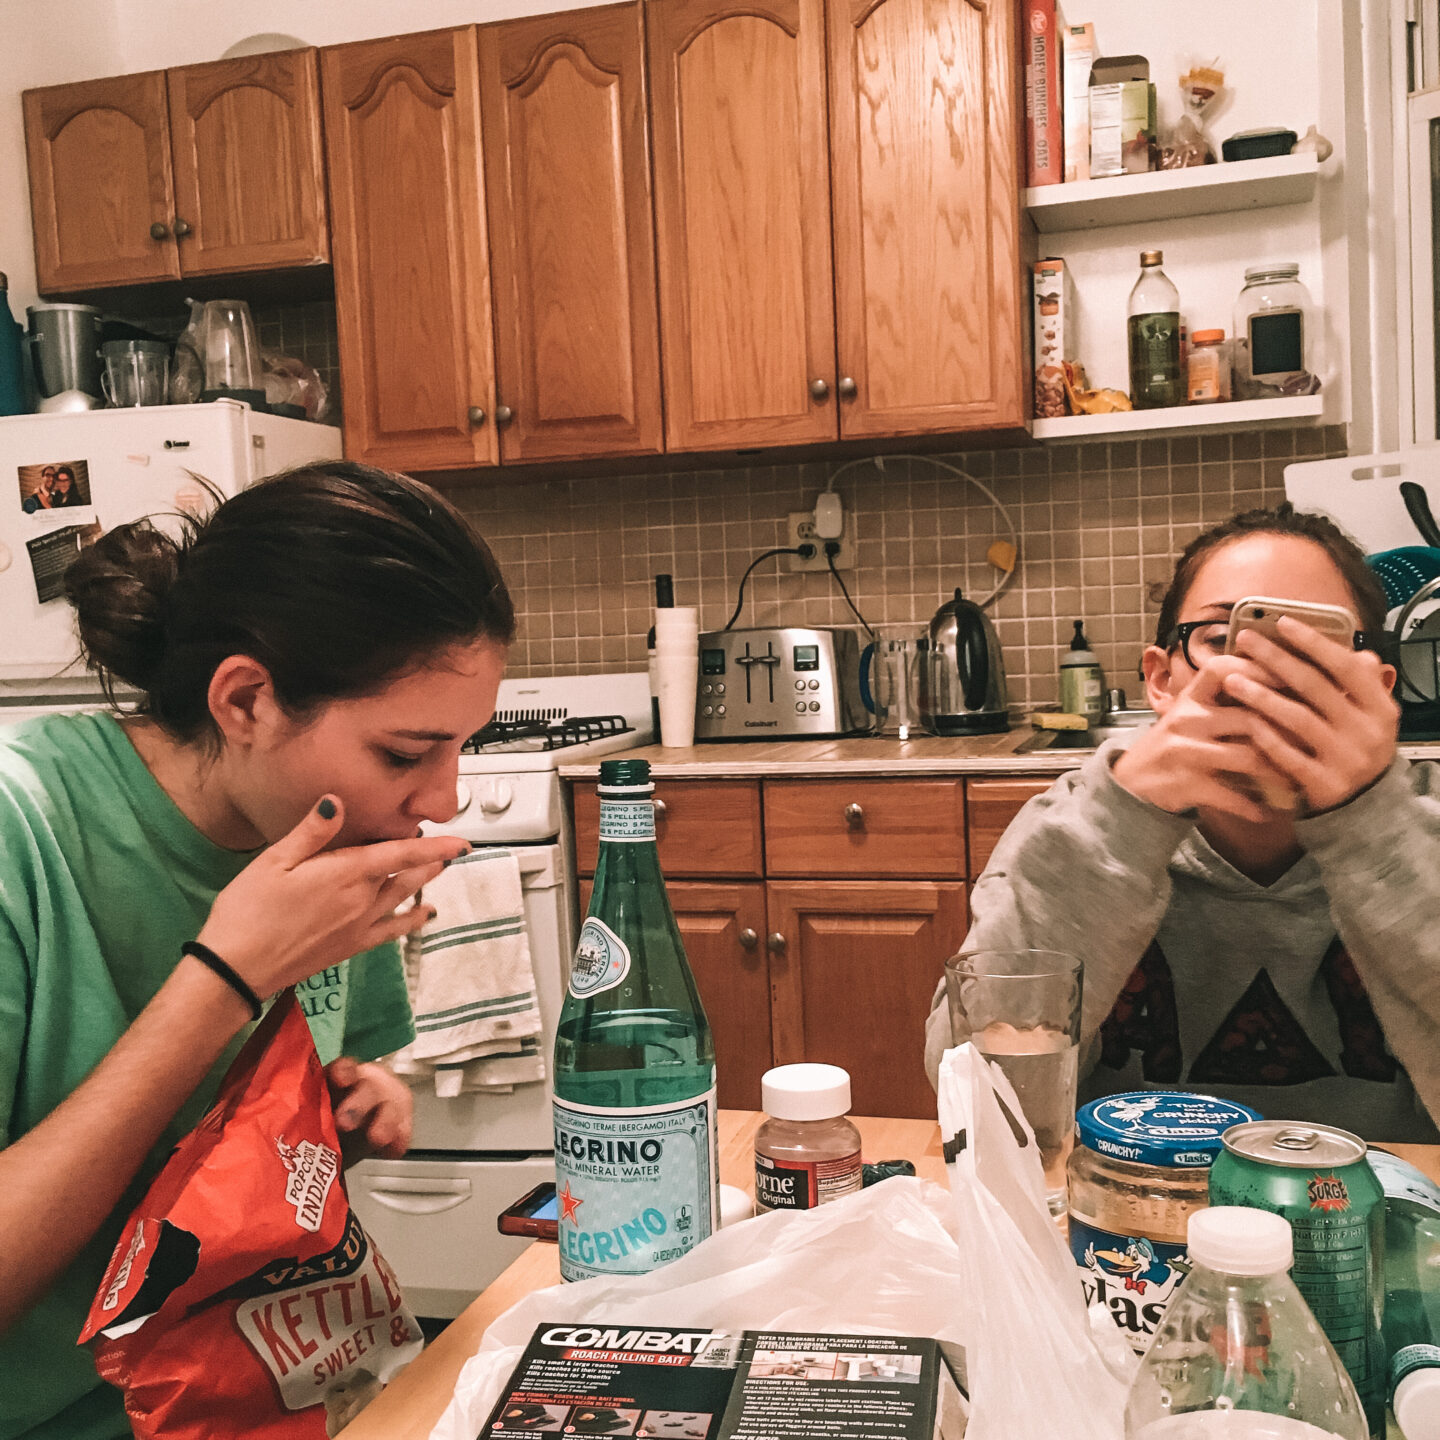 Two roommates snacking and enjoying each others company